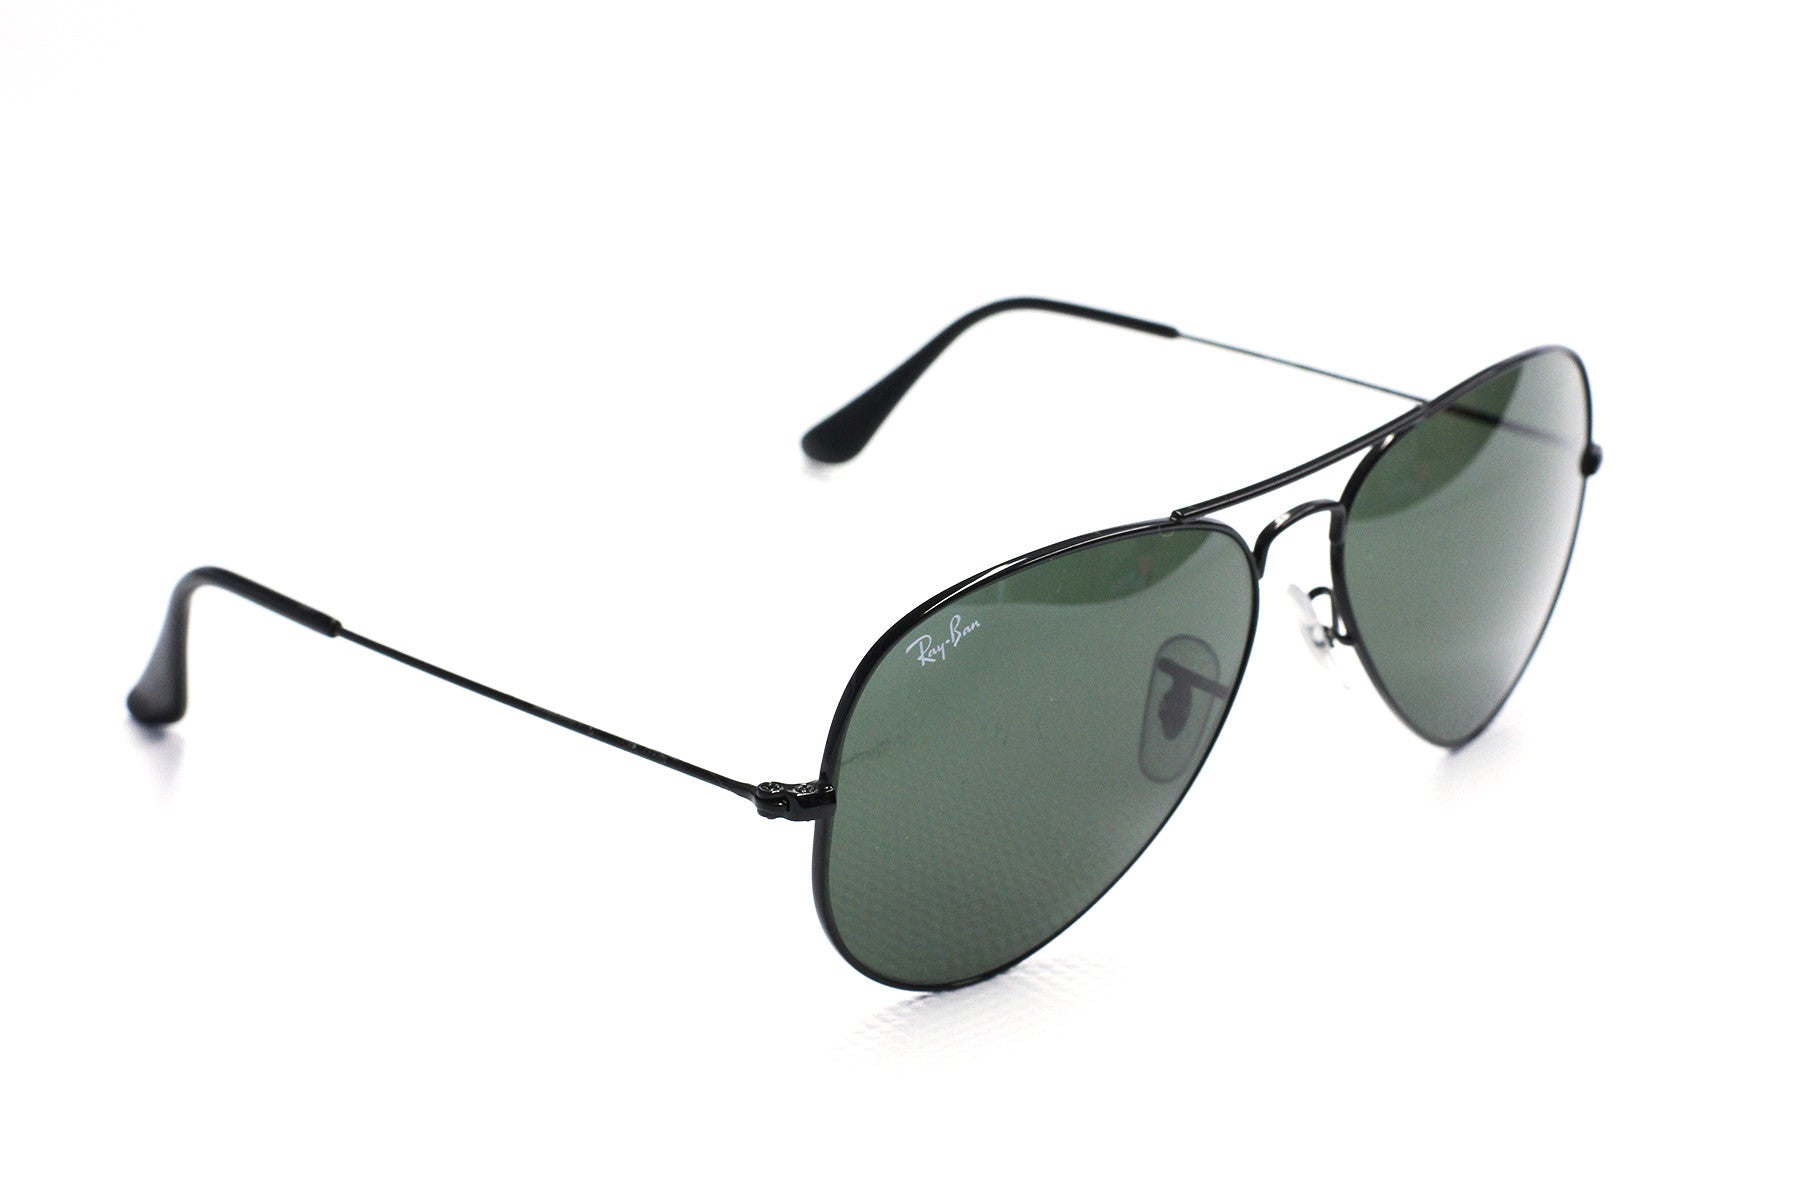 Ray-Ban RB3025 Aviator L2823 Black Sunglasses at Enderbys UK